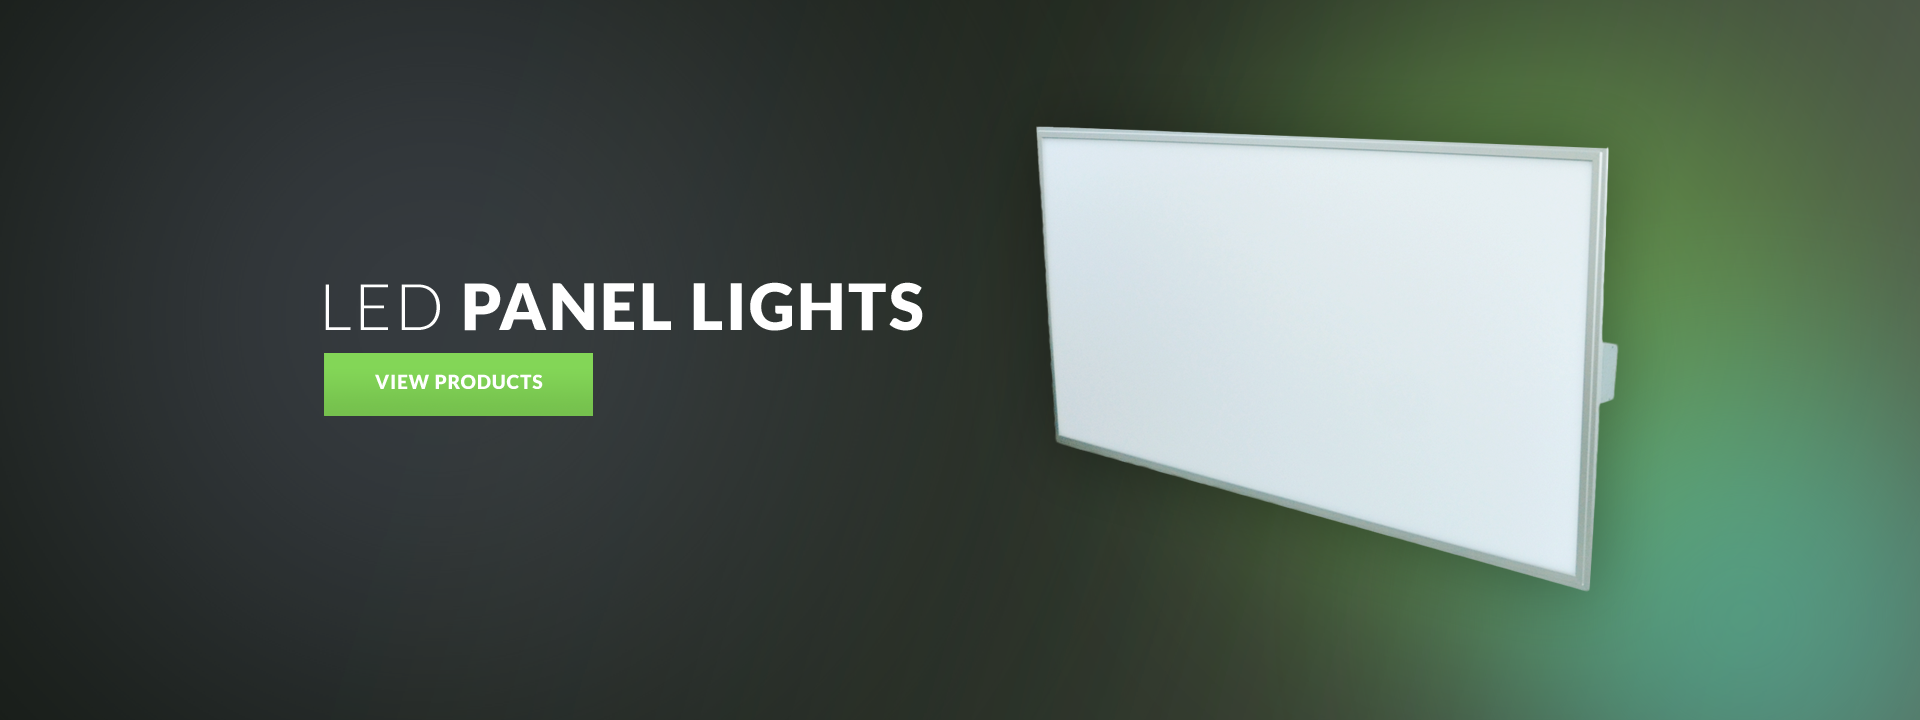 led-panel-lights